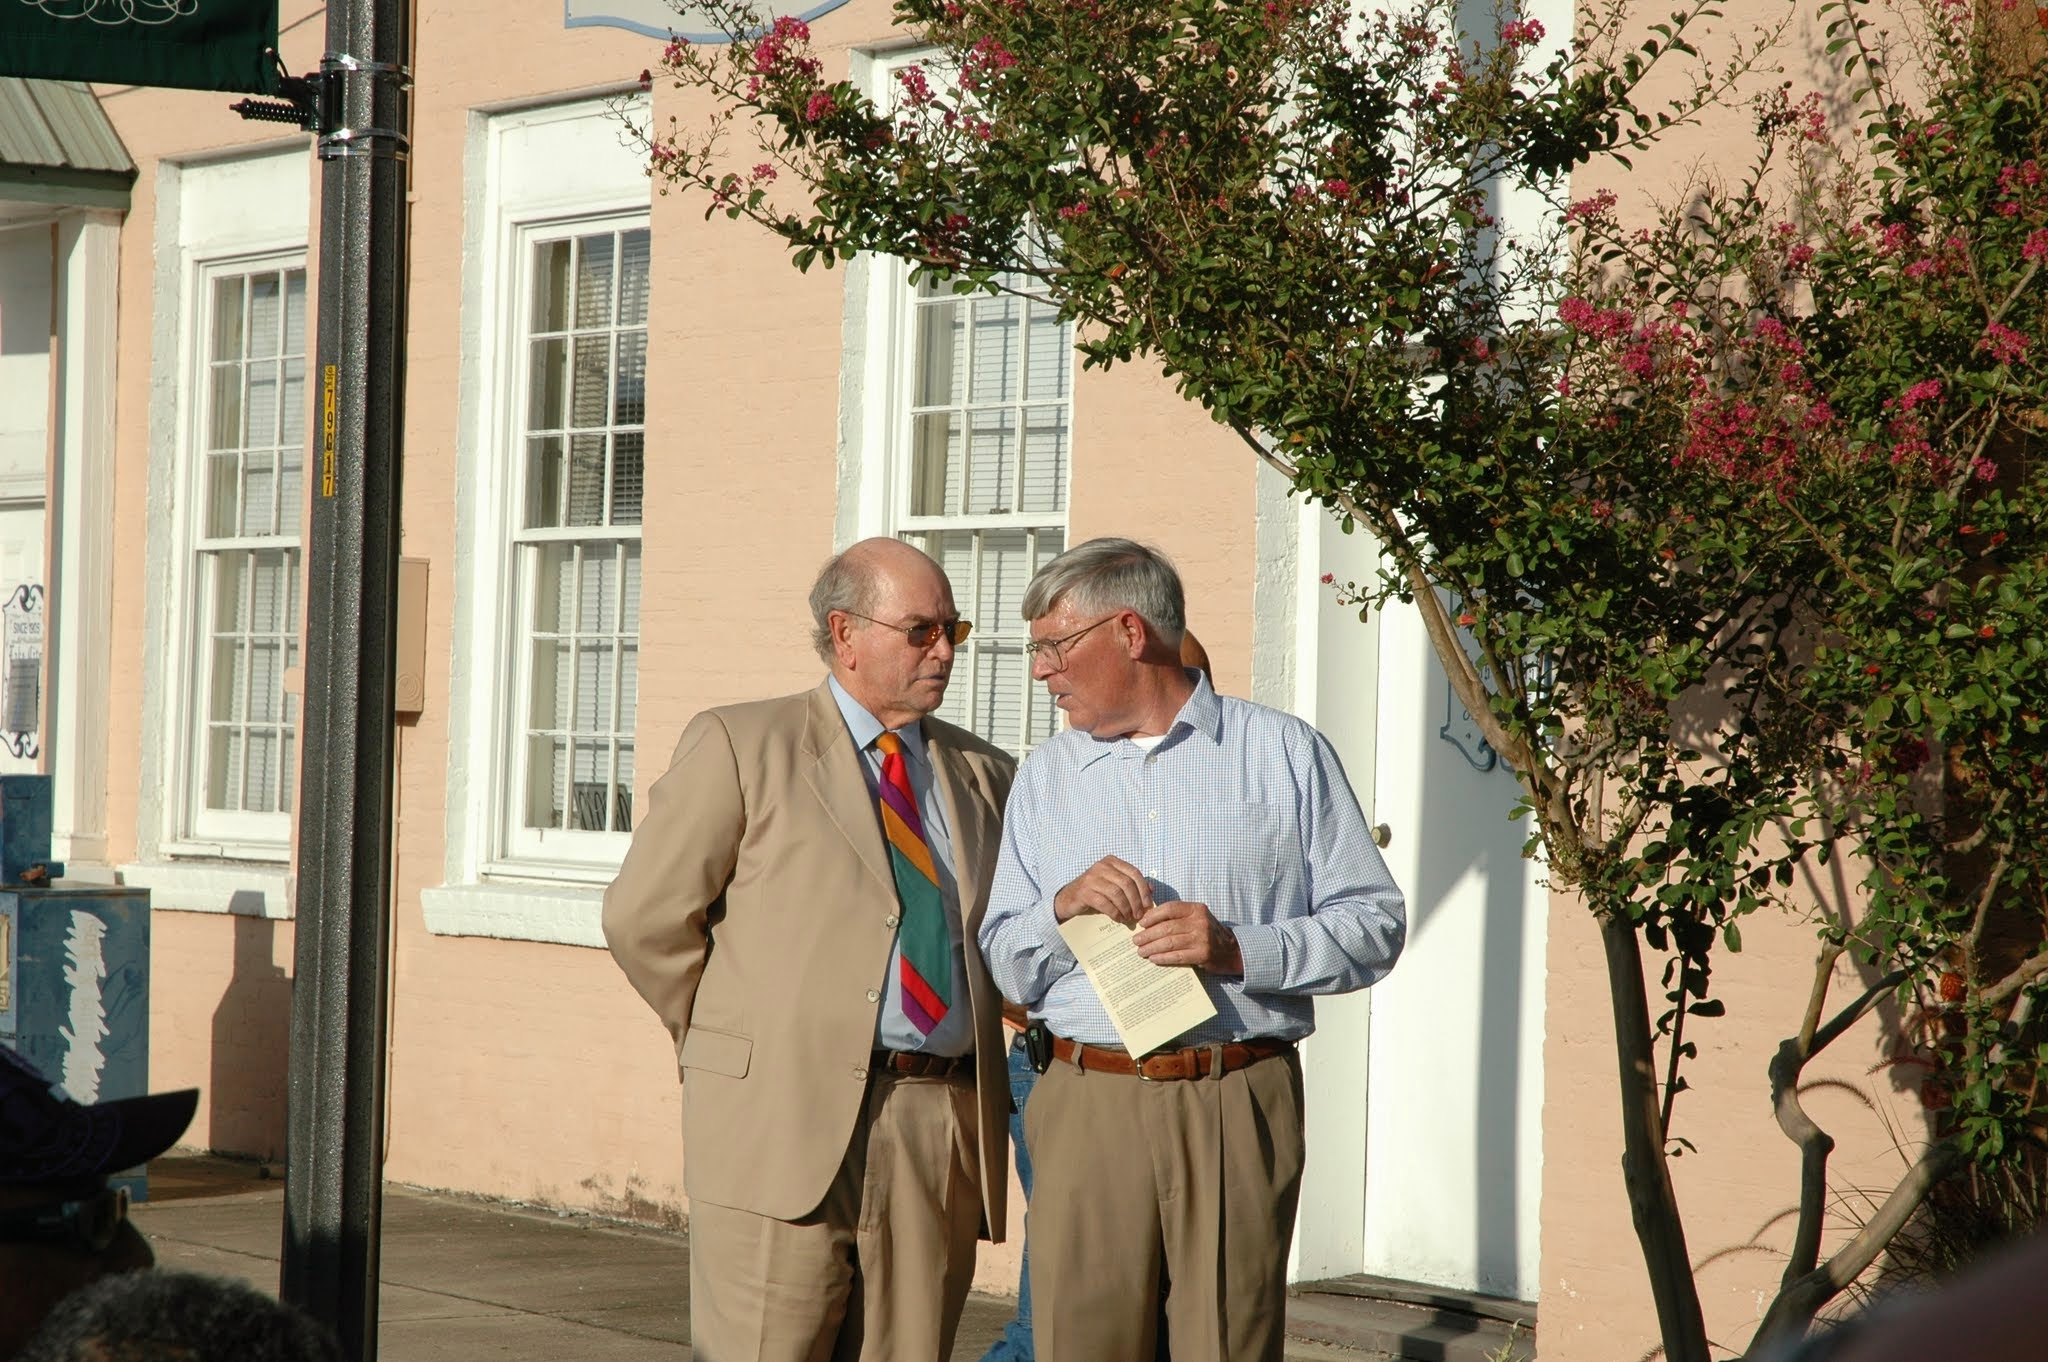 Jim Fields and Ray McBride discussing details